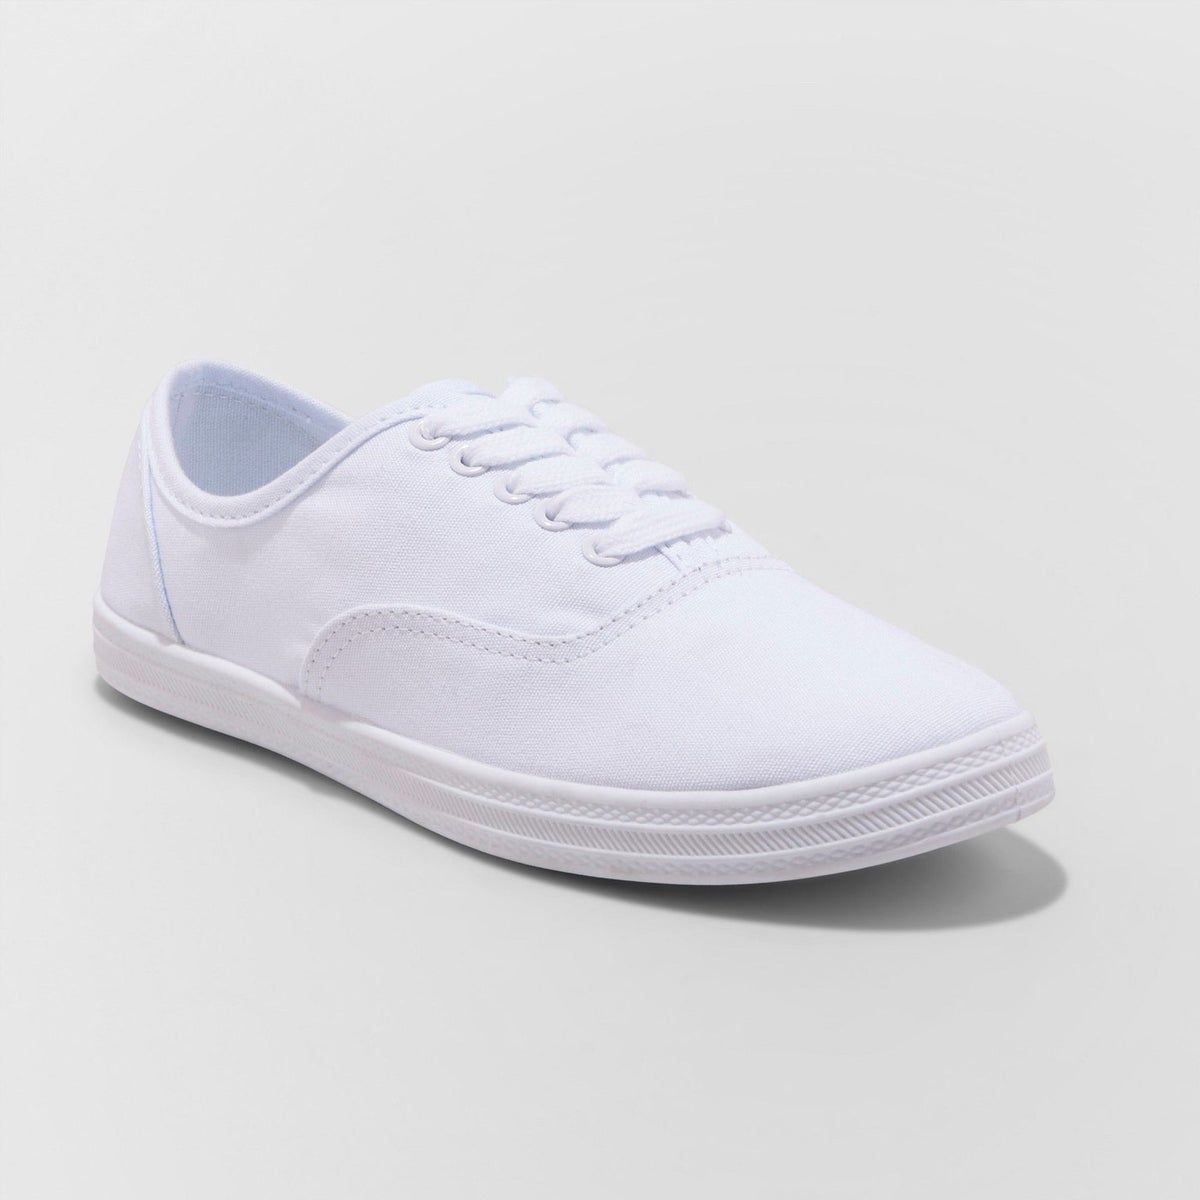 New (10) Women's Lace Up Canvas Sneaker